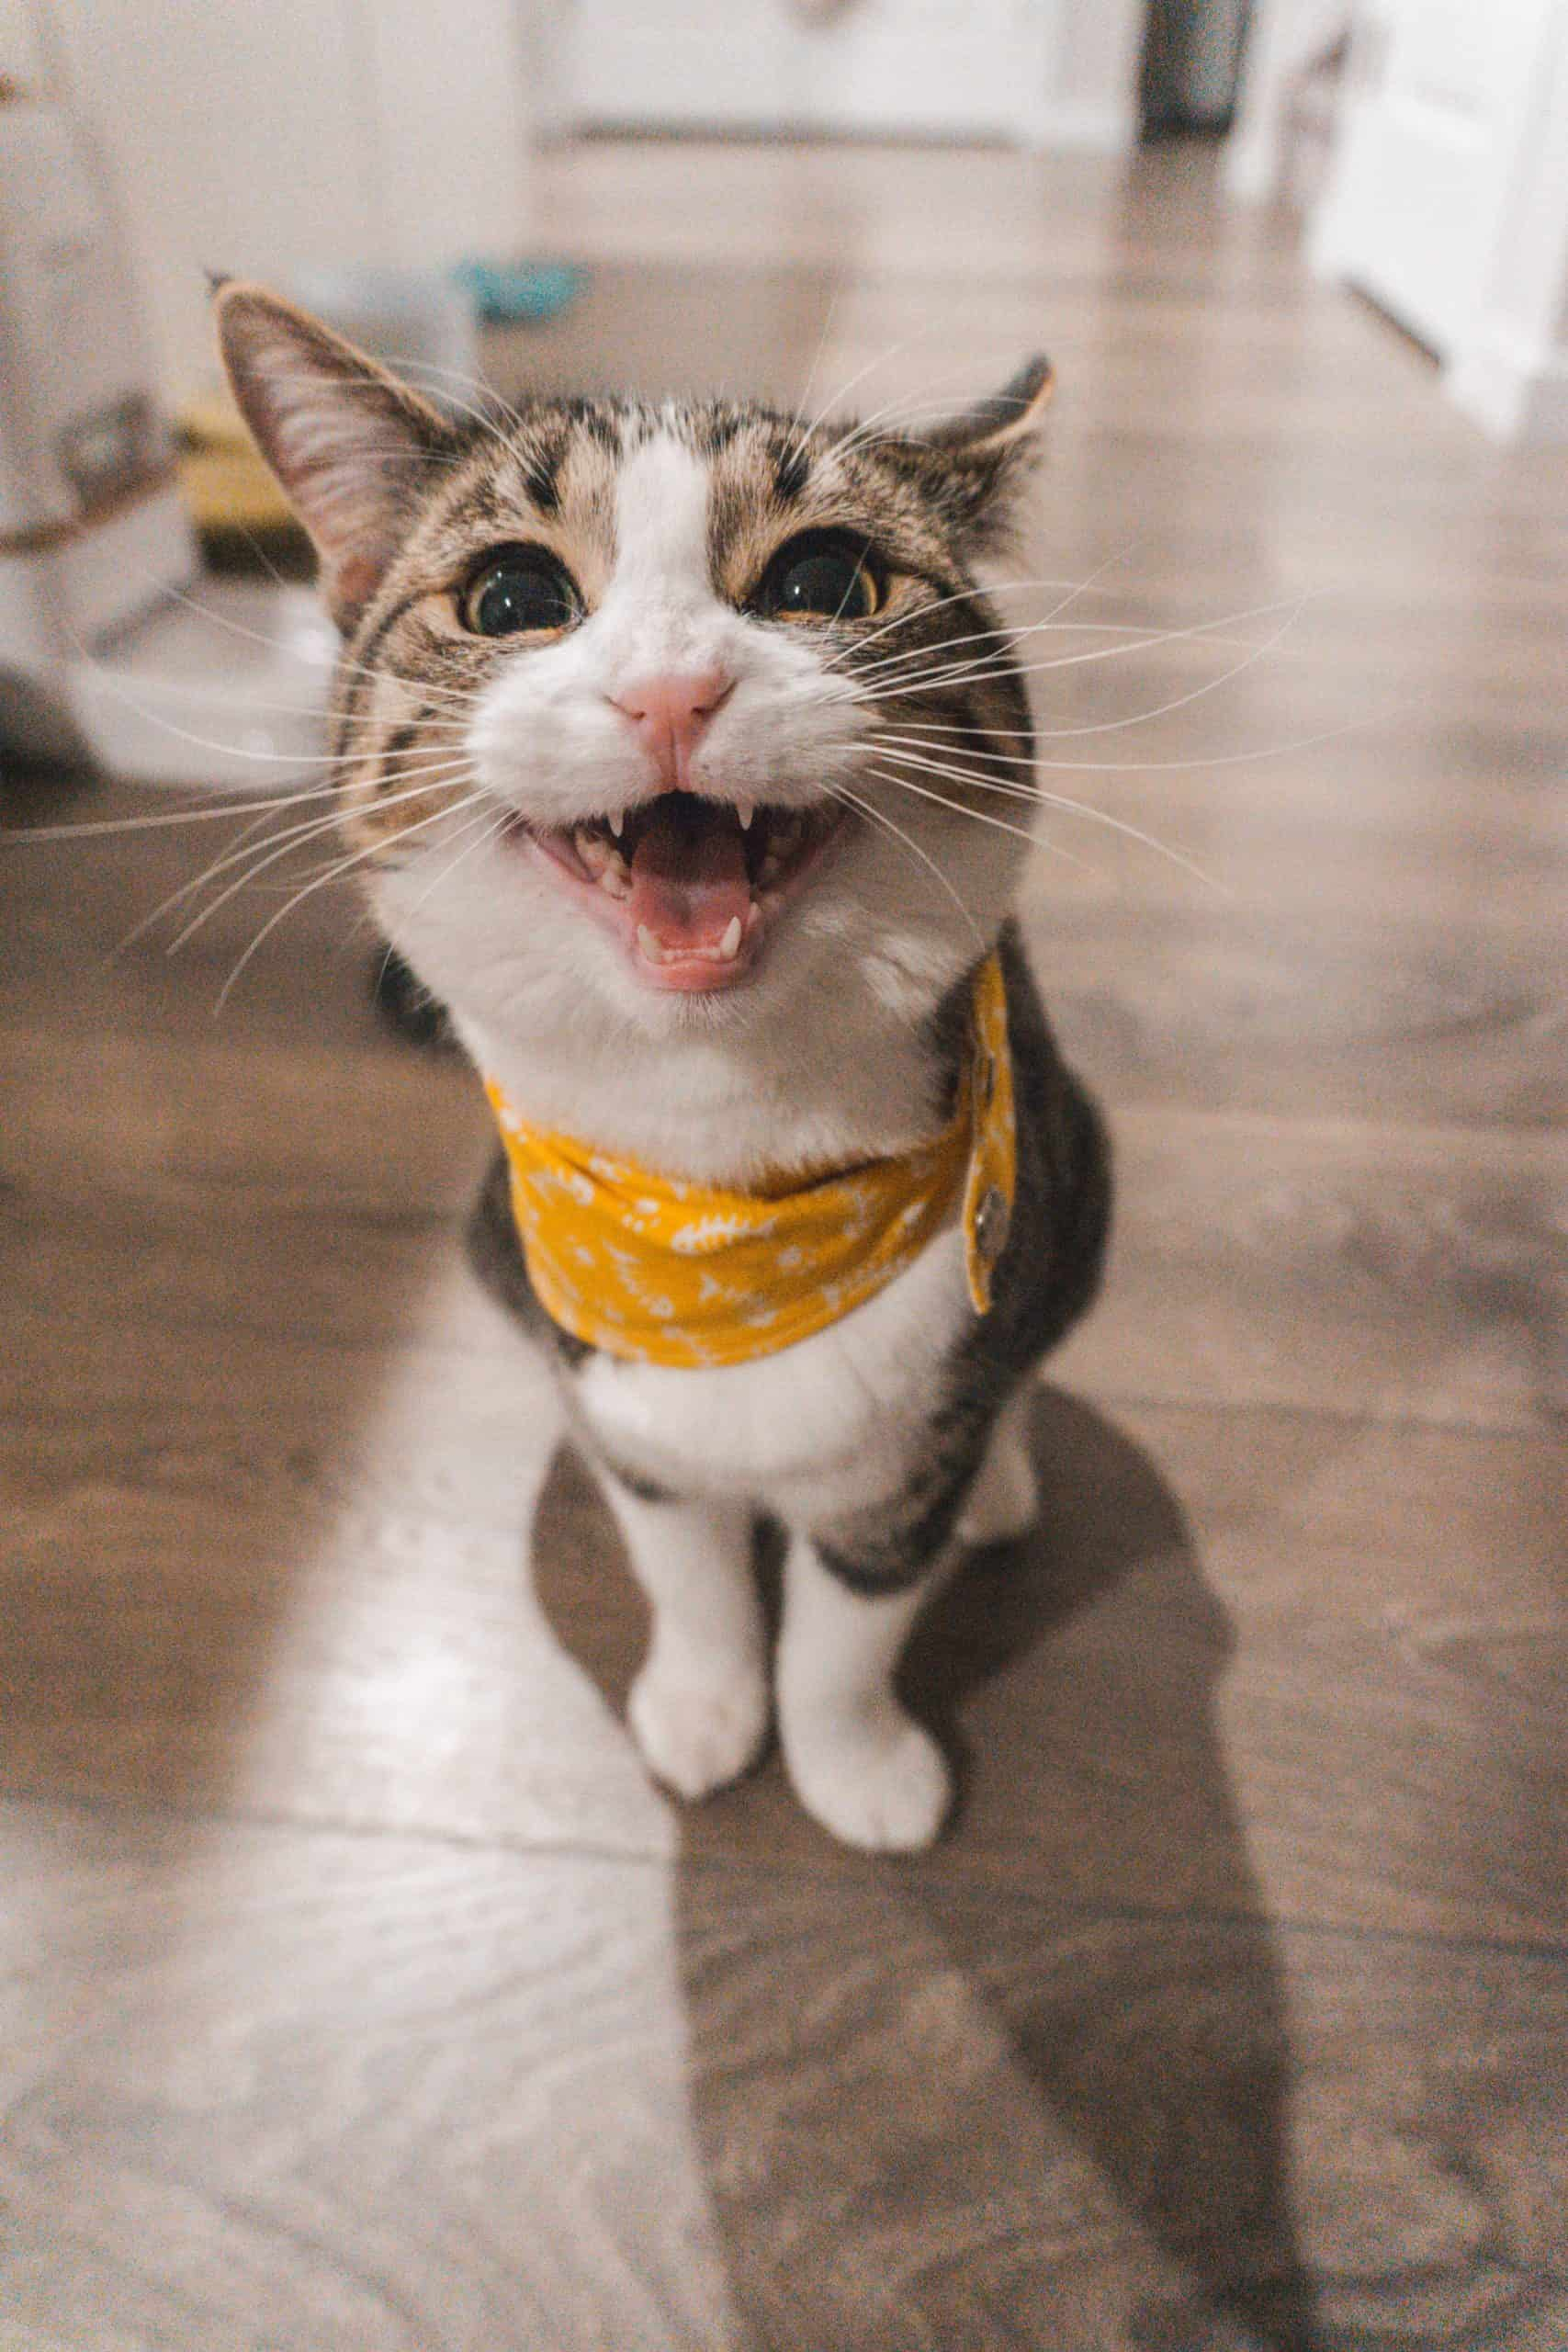 Cat Bites And Scratches: Treatment And Precaution